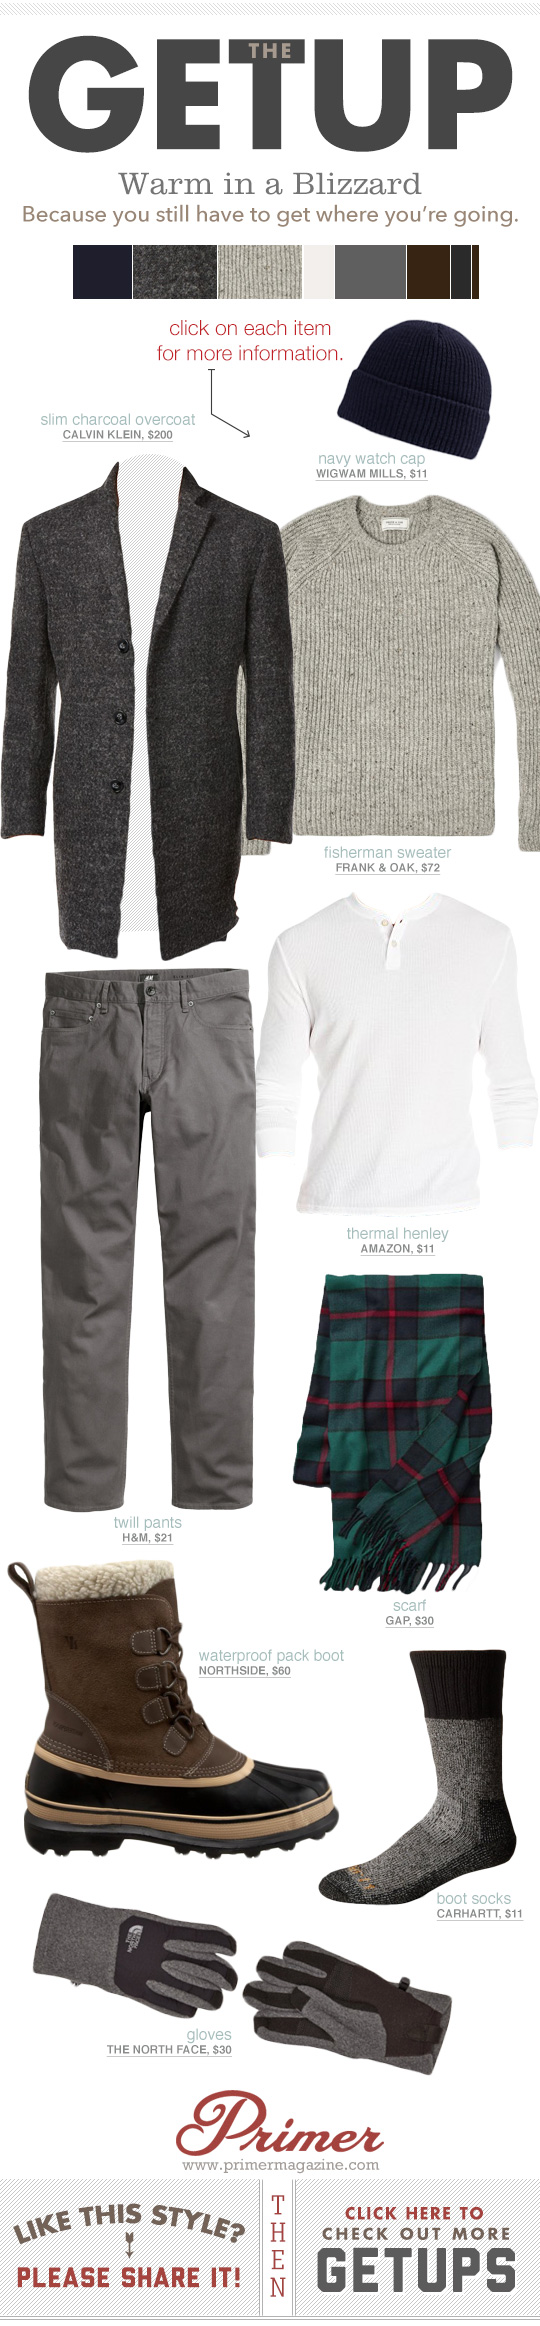 Men's winter cold weather outfit